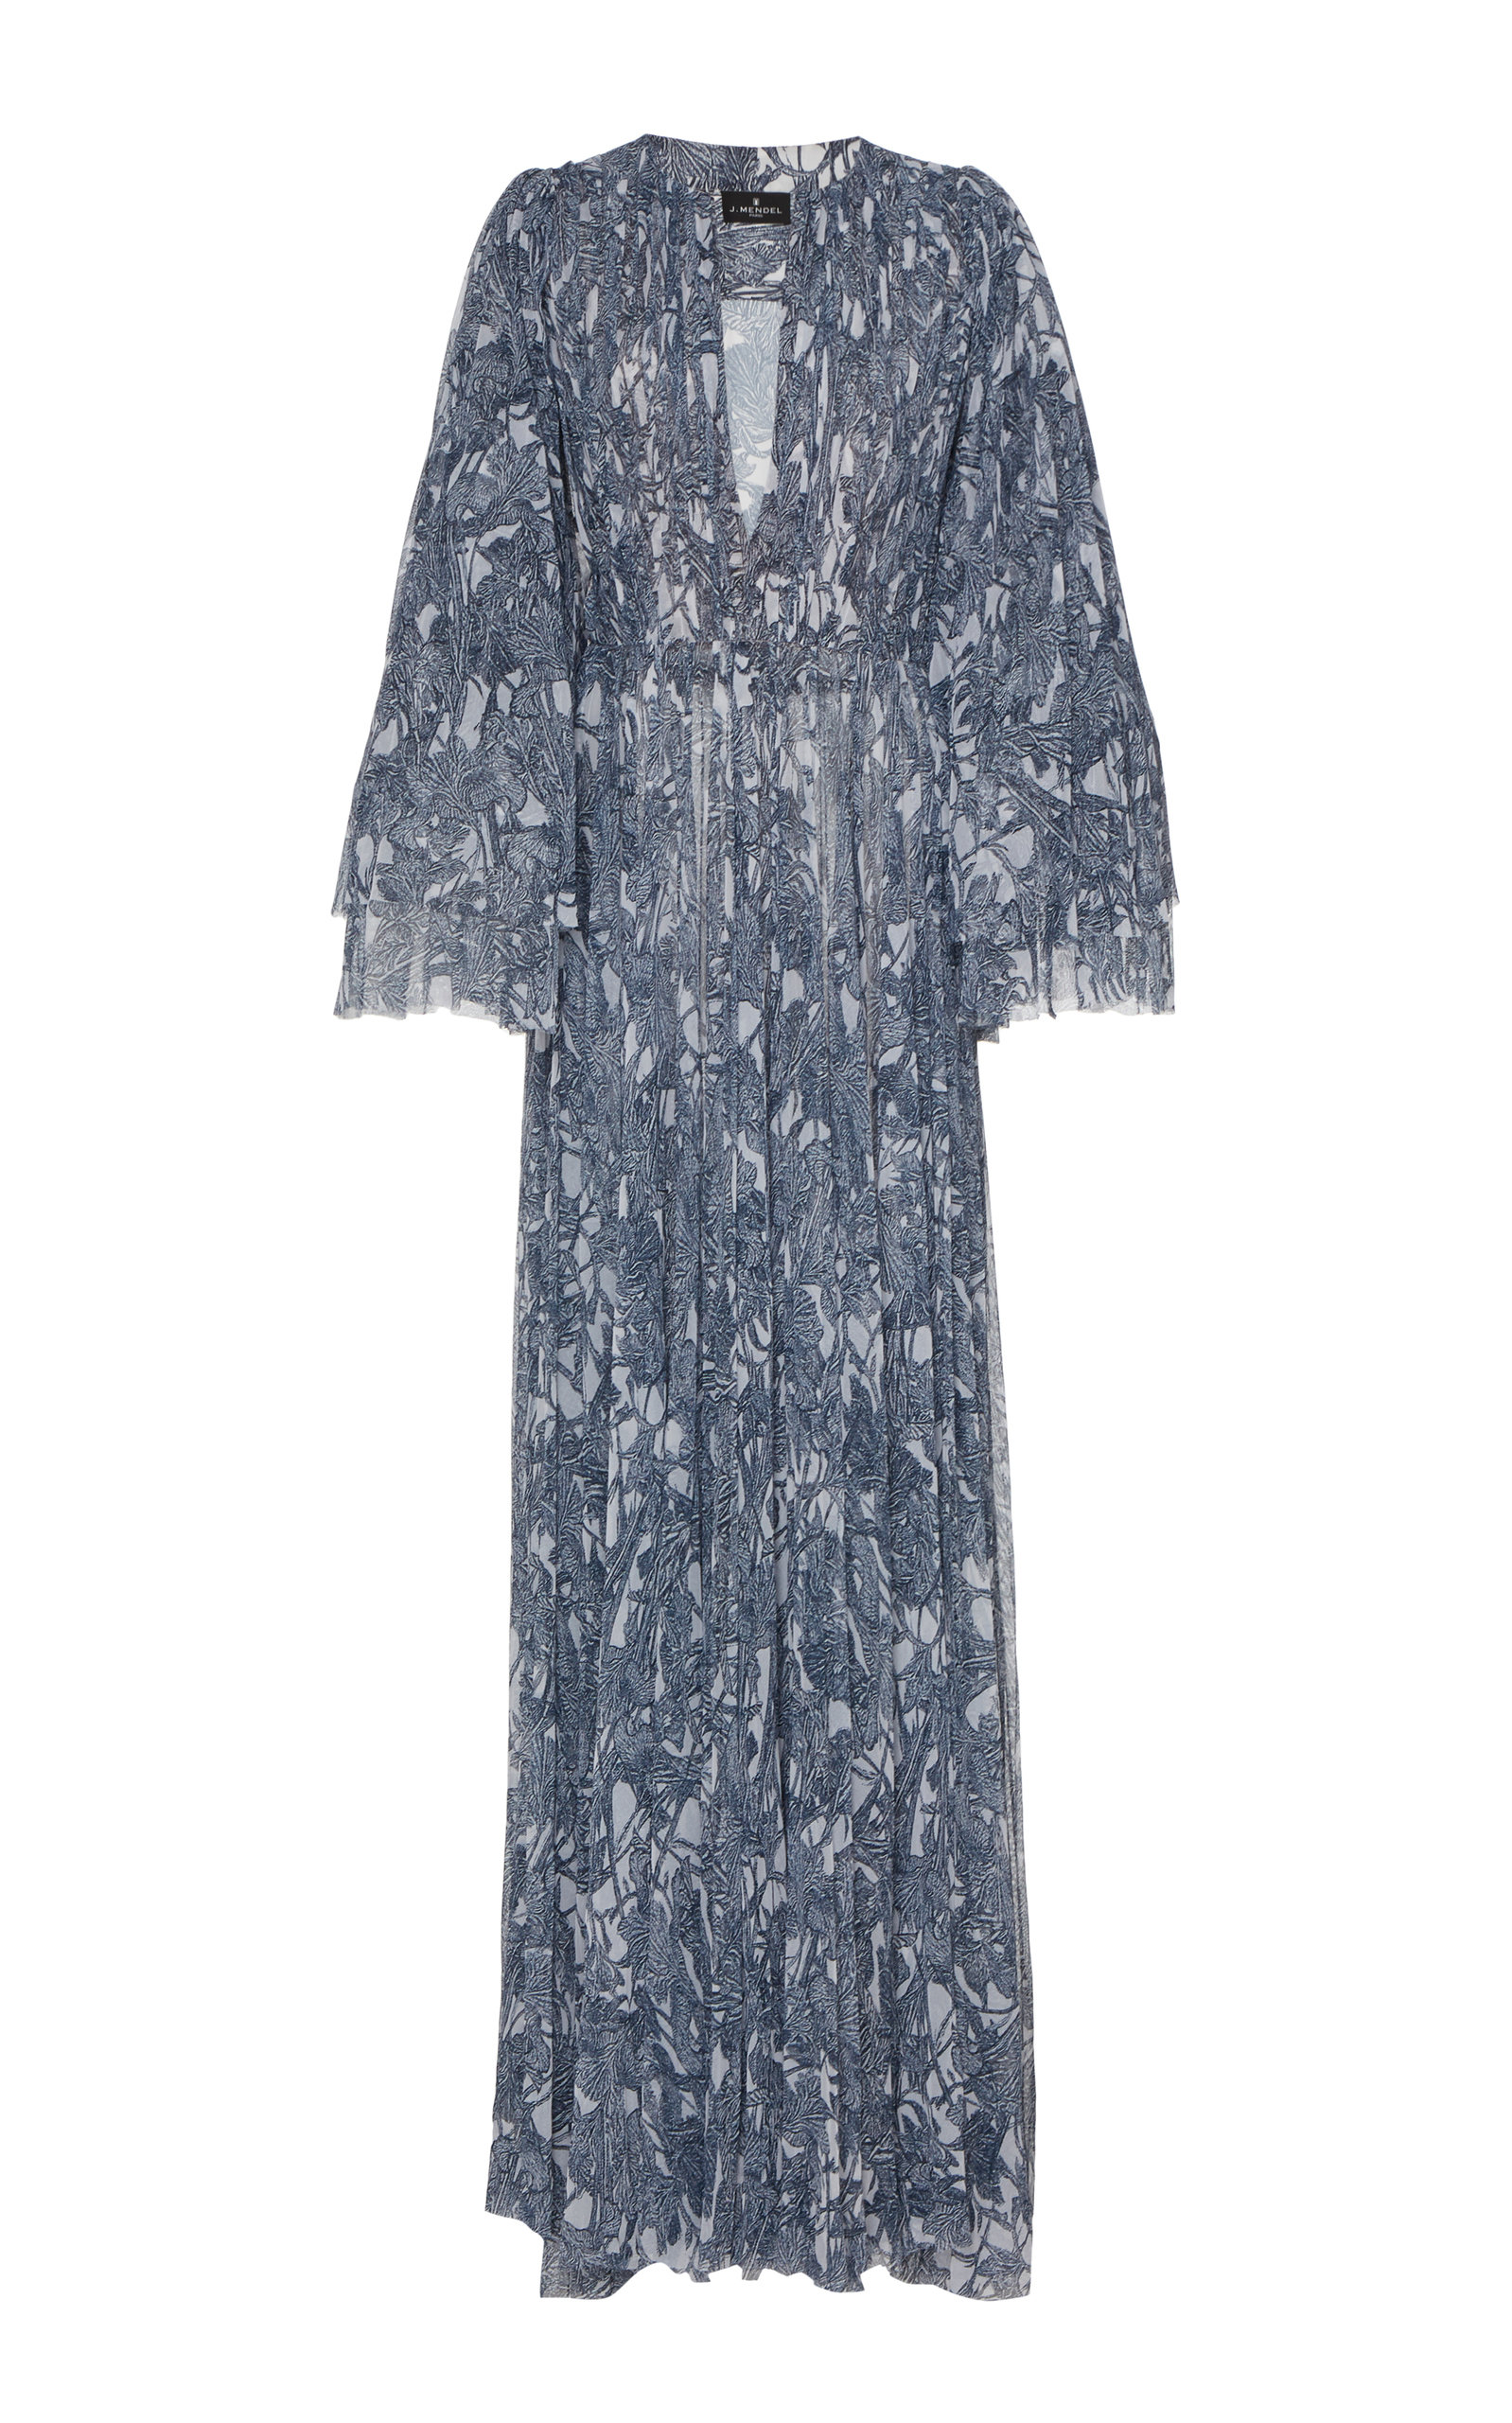 Buy J. Mendel Patterned Pleat-Accented Silk Gown online, shop J. Mendel at the best price